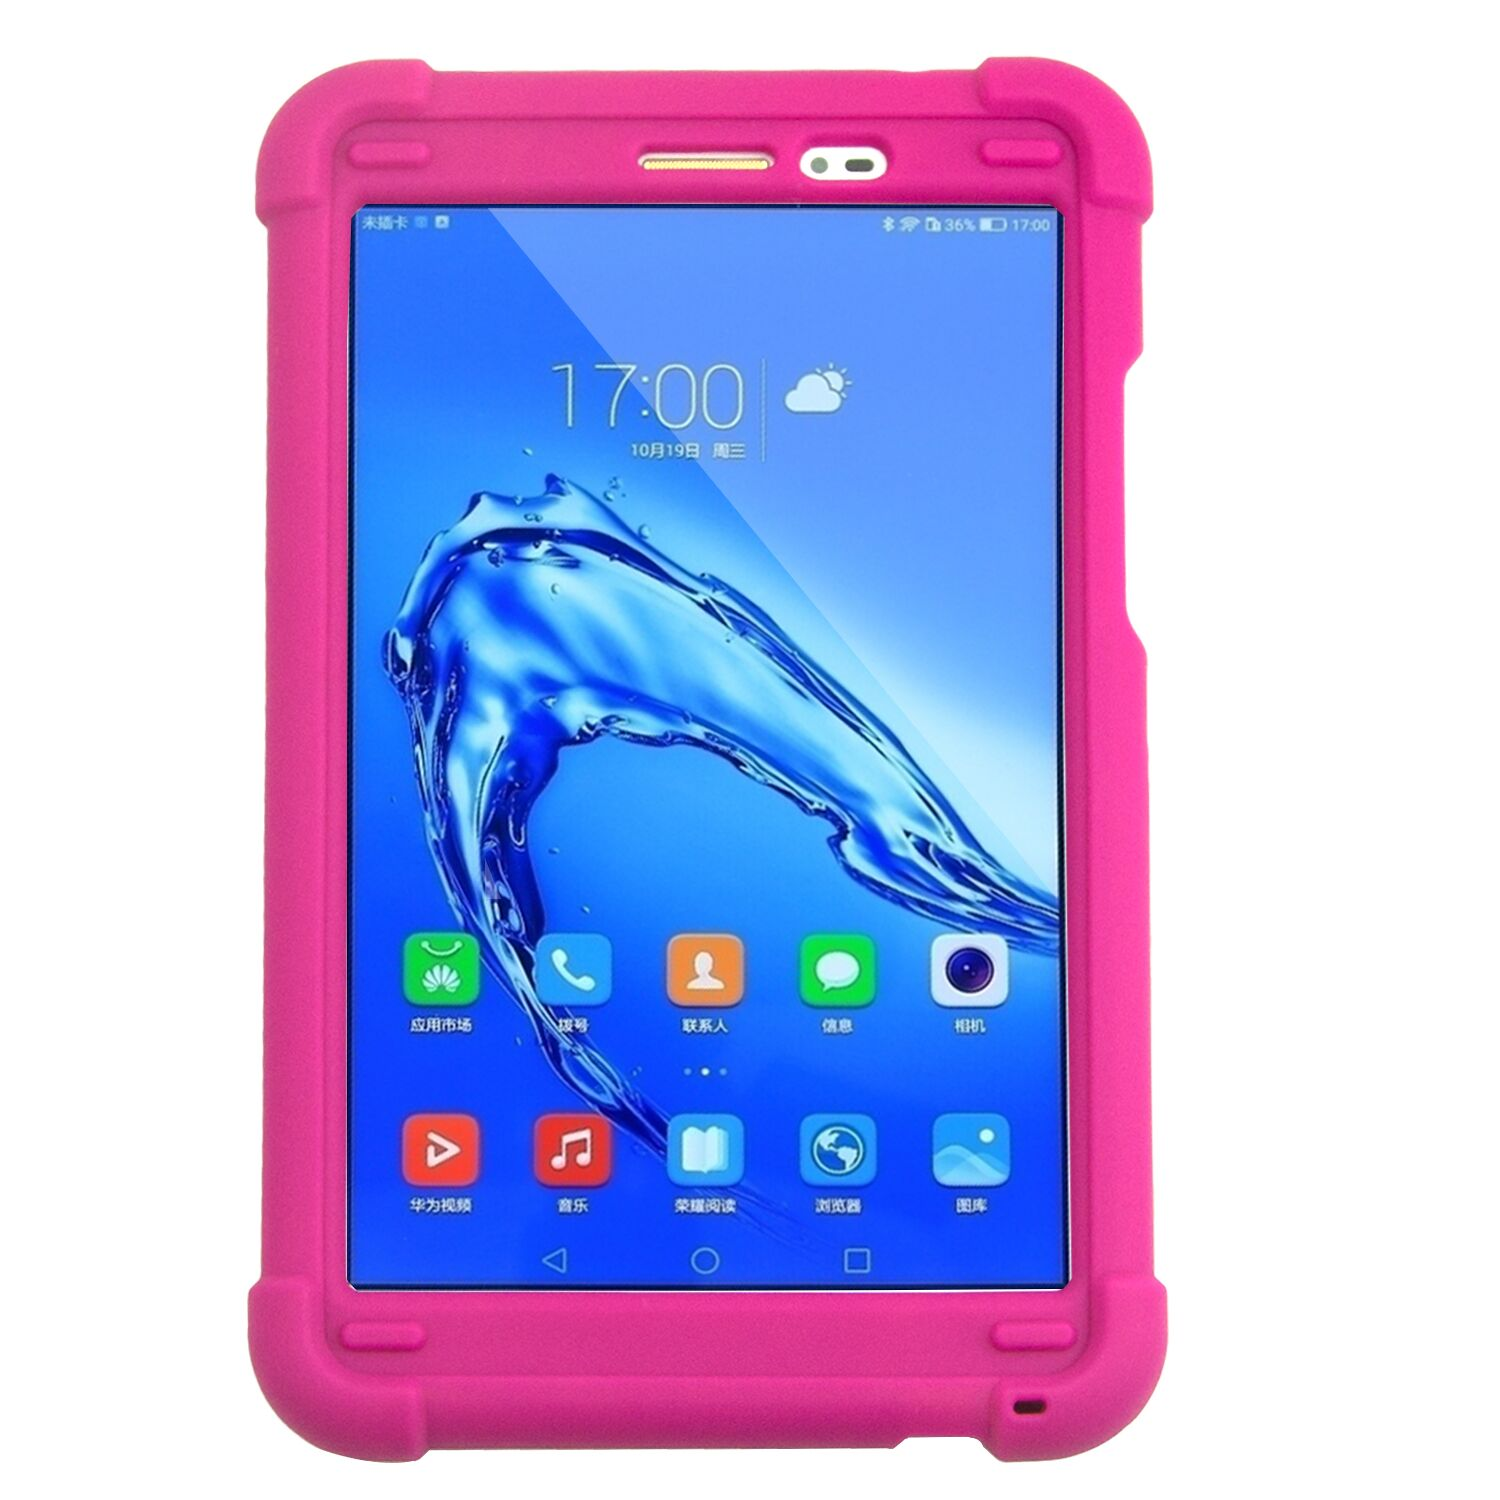 MingShore Shockproof Rugged Cover Case For Huawei MediaPad T2 8 Pro JDN-L01 Honor Pad 2 Tablet 2 JDN-W09 JDN-AL00 8.0inch Tablet case for huawei mediapad t2 8 0 pro wireless bluetooth keyboard 8 cover tablet jdn w09 jdn al00 inch